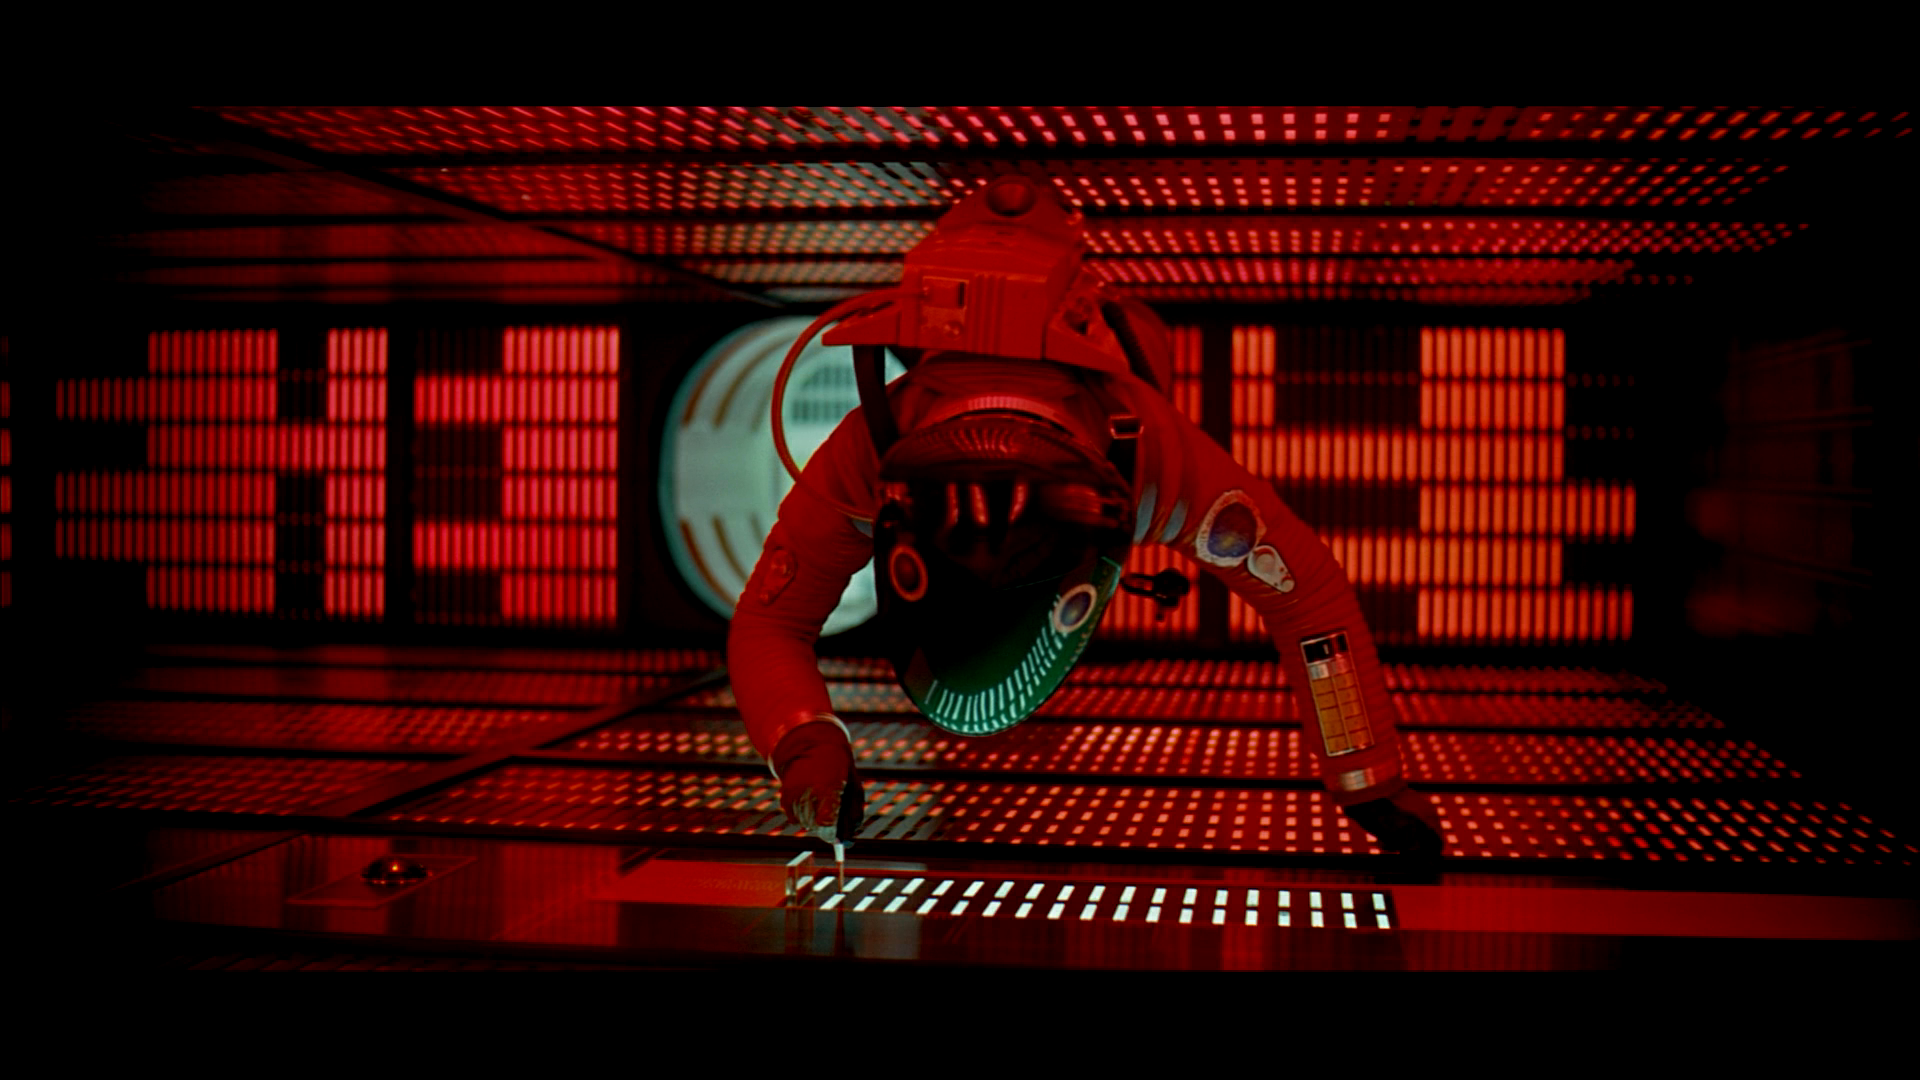 2001 A Space Odyssey Takes Us Right To The End Every Day Is